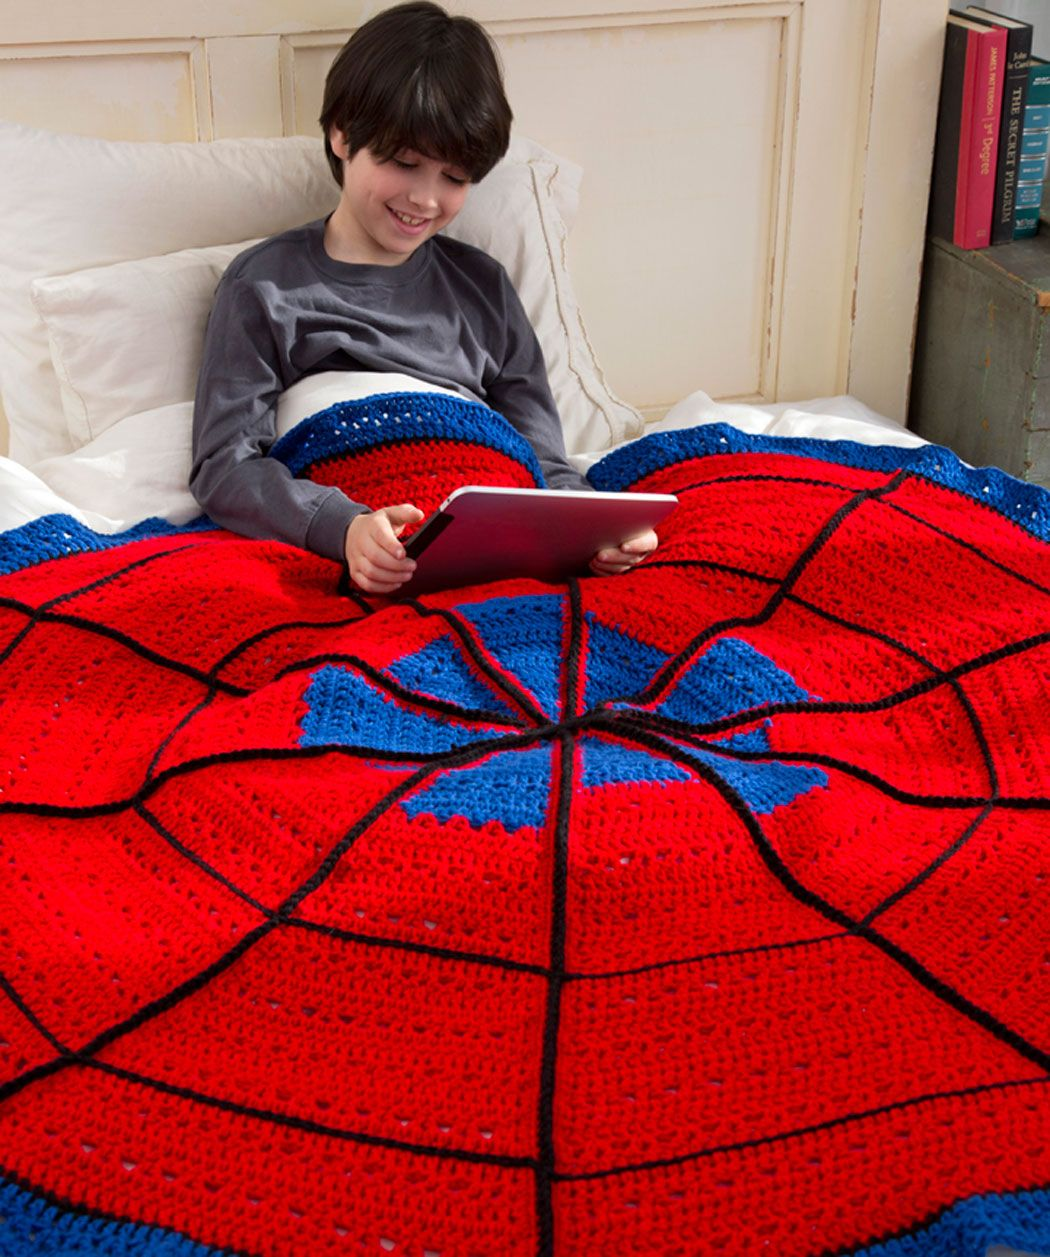 Spider Web Throw. Wish I knew how to do this so I could make one for Jackson!